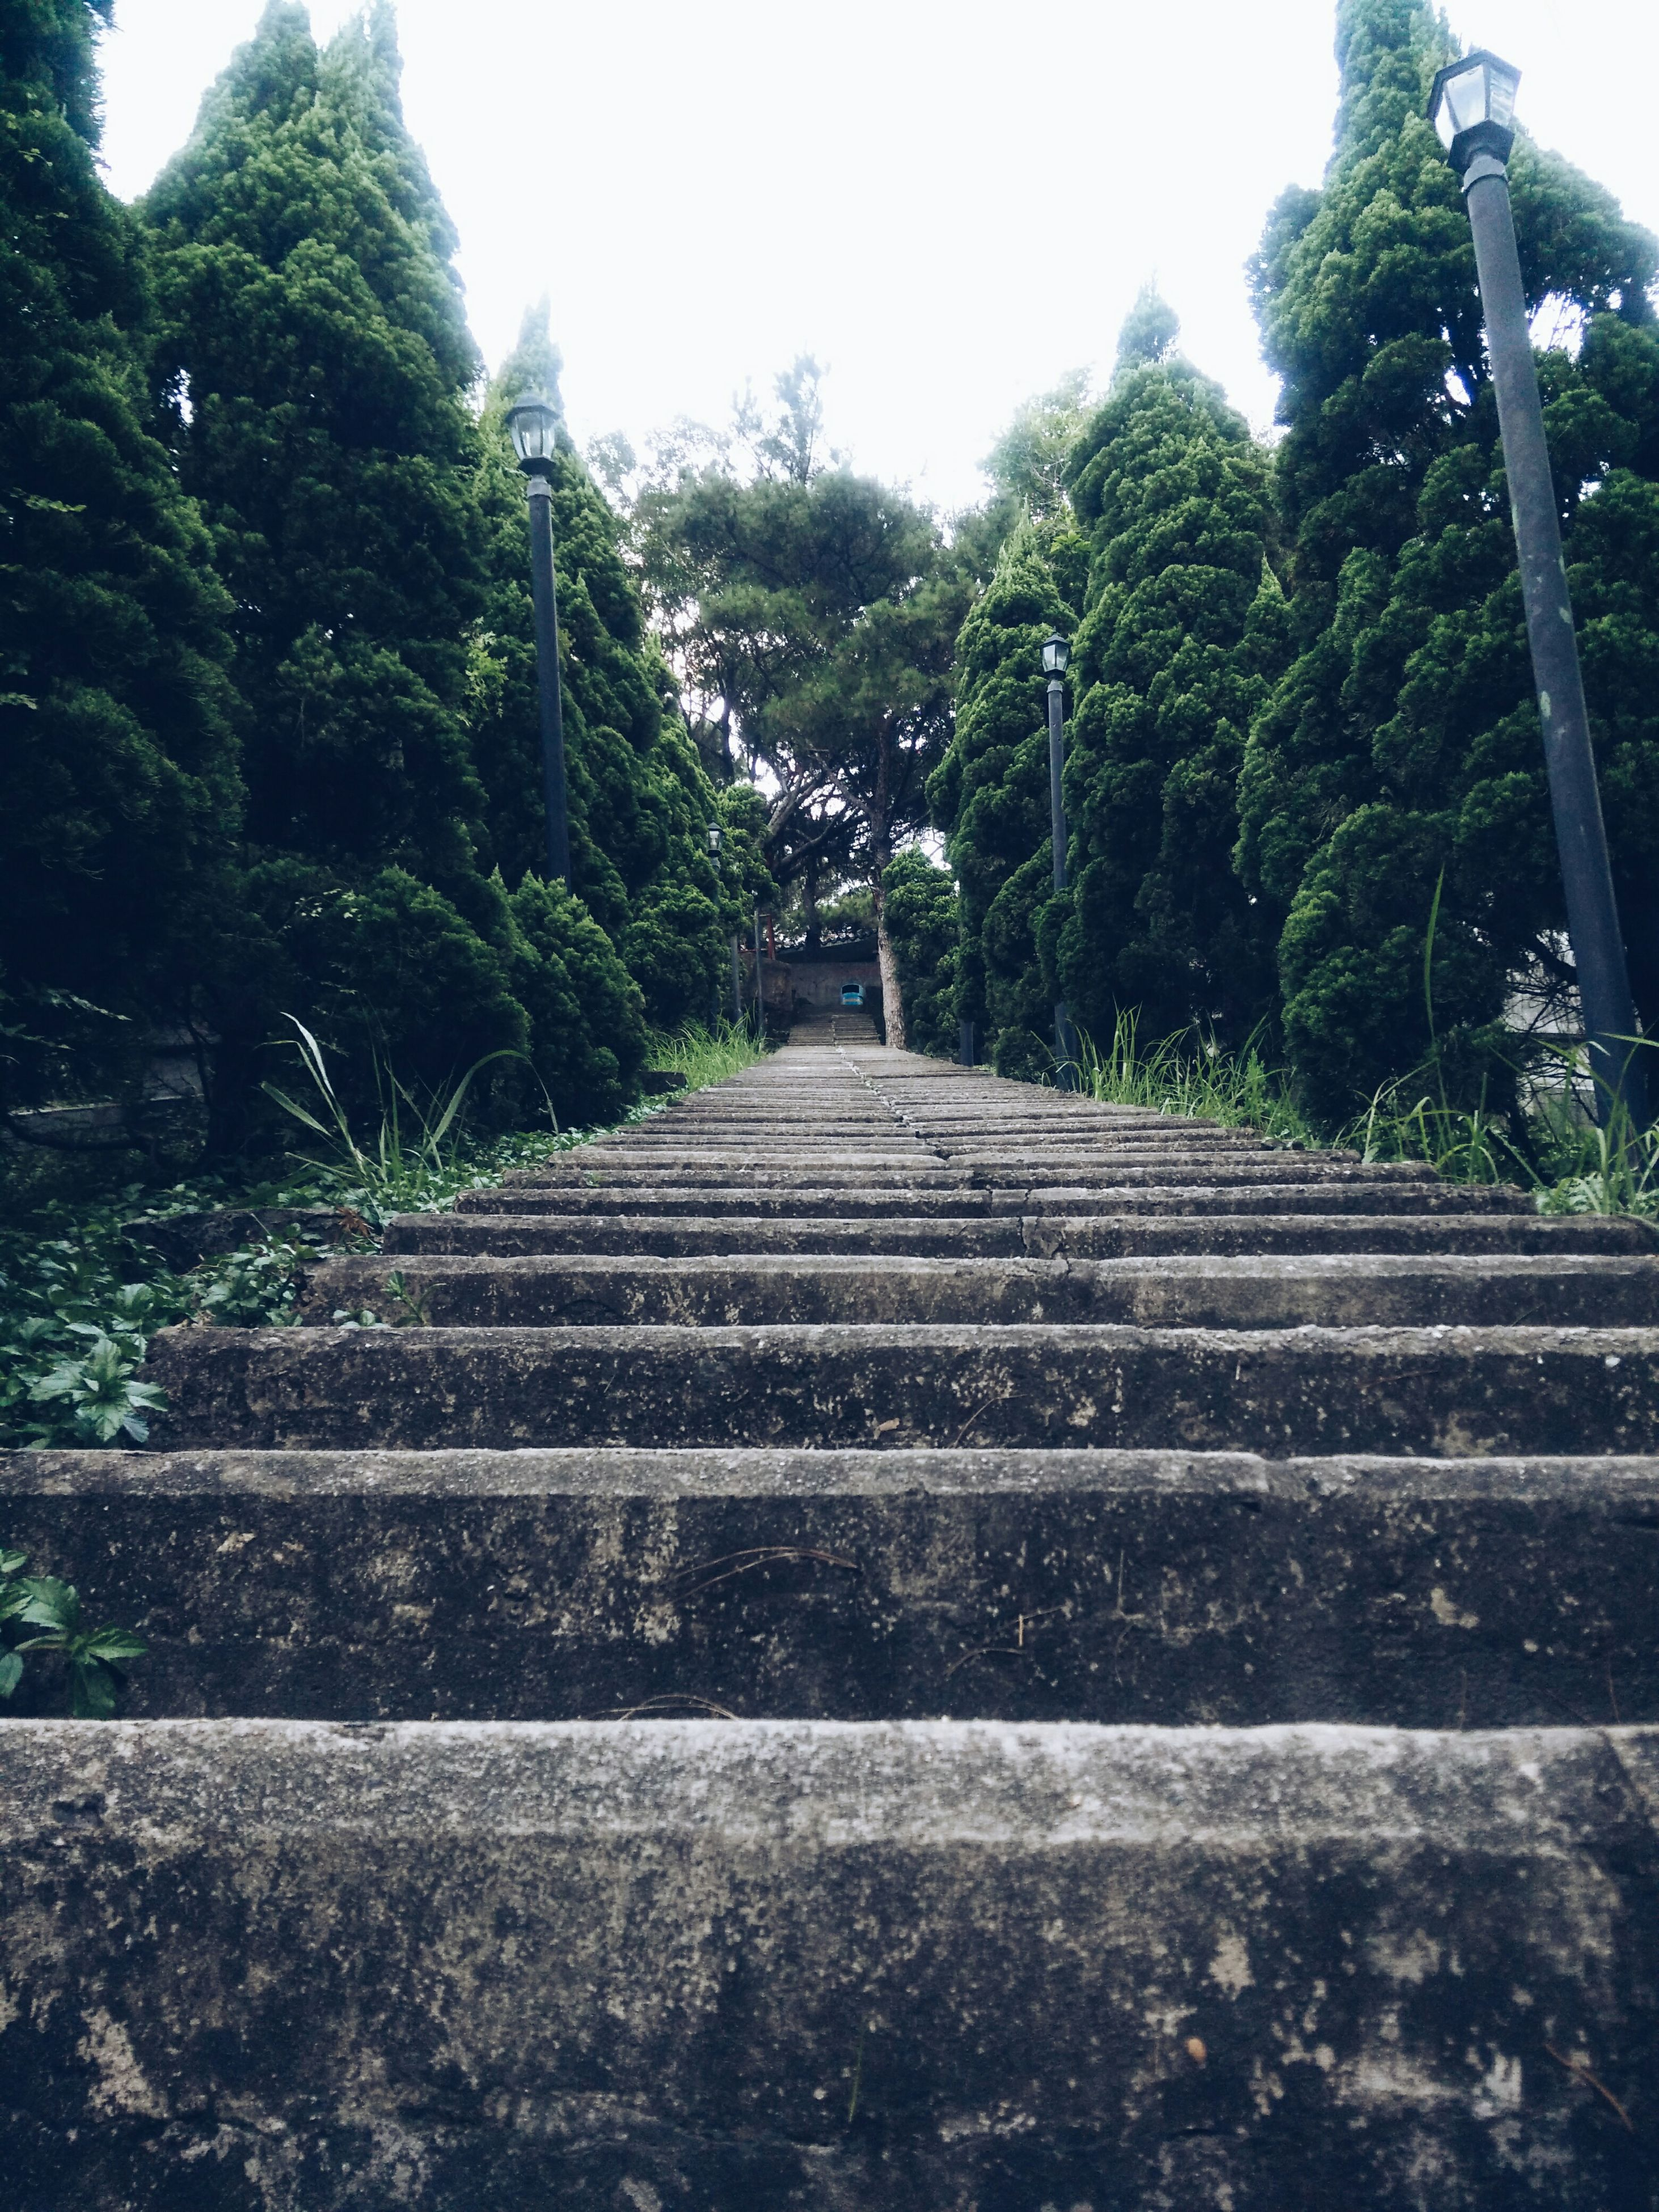 tree, the way forward, steps, clear sky, low angle view, steps and staircases, sky, growth, diminishing perspective, staircase, day, railing, outdoors, nature, tranquility, railroad track, vanishing point, no people, plant, transportation